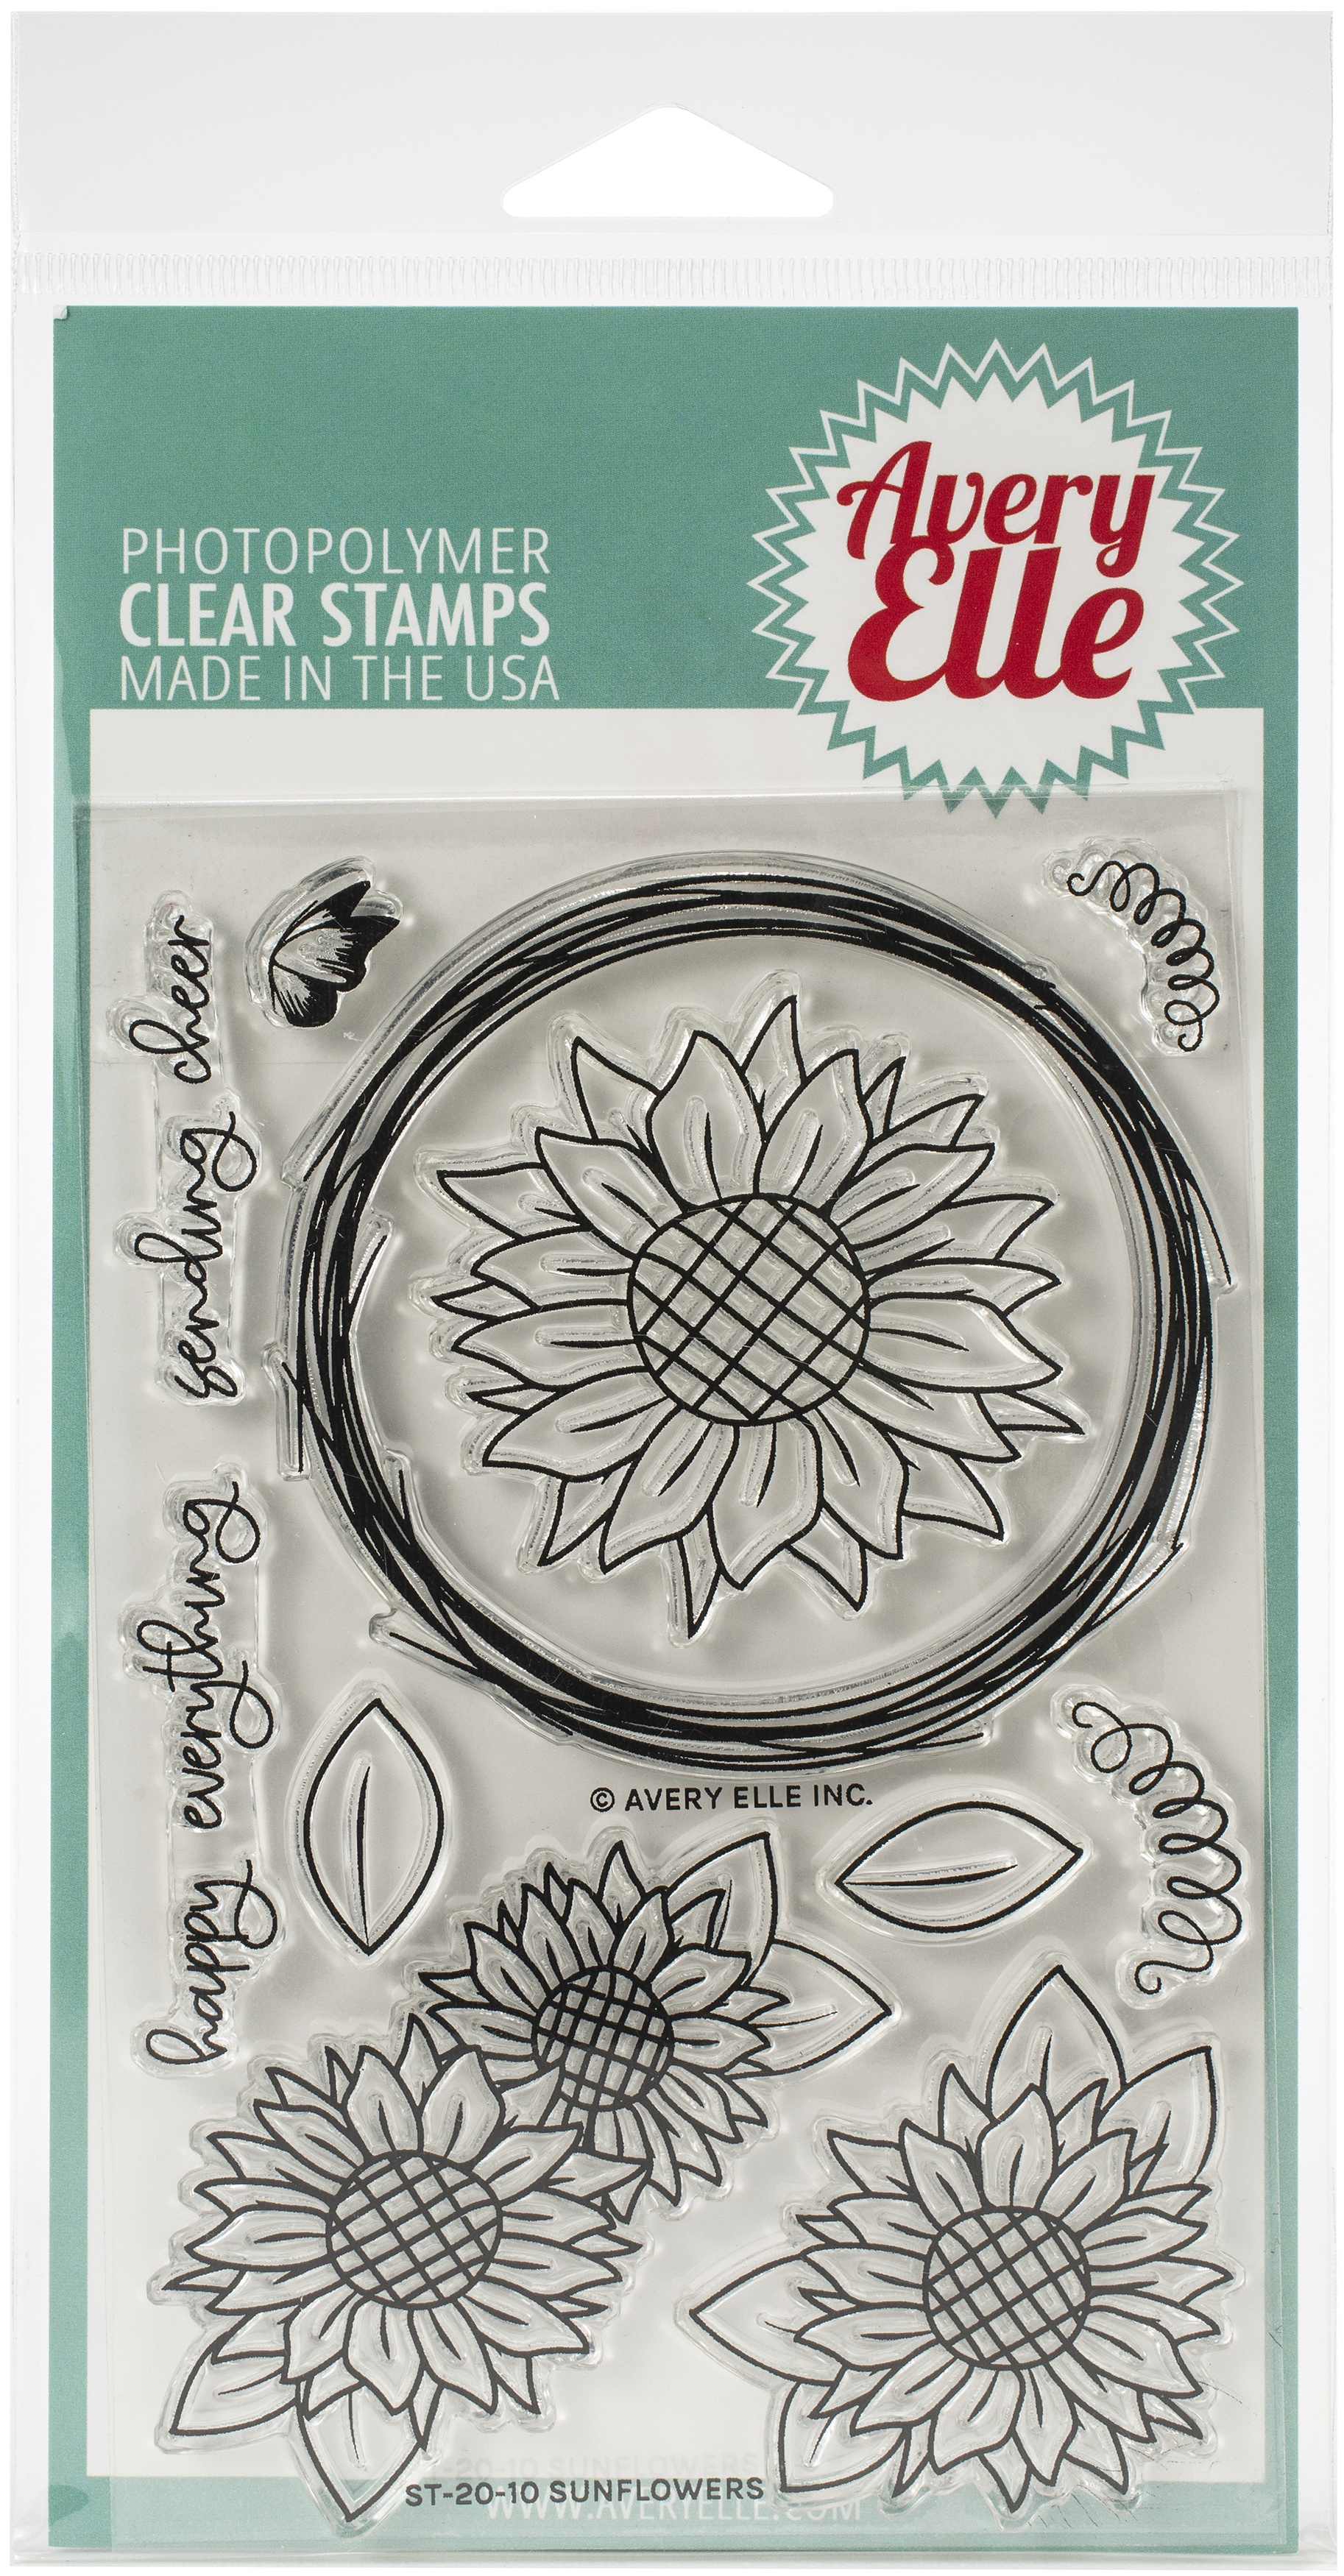 Avery Elle Clear Stamp Set 4X6-Sunflowers